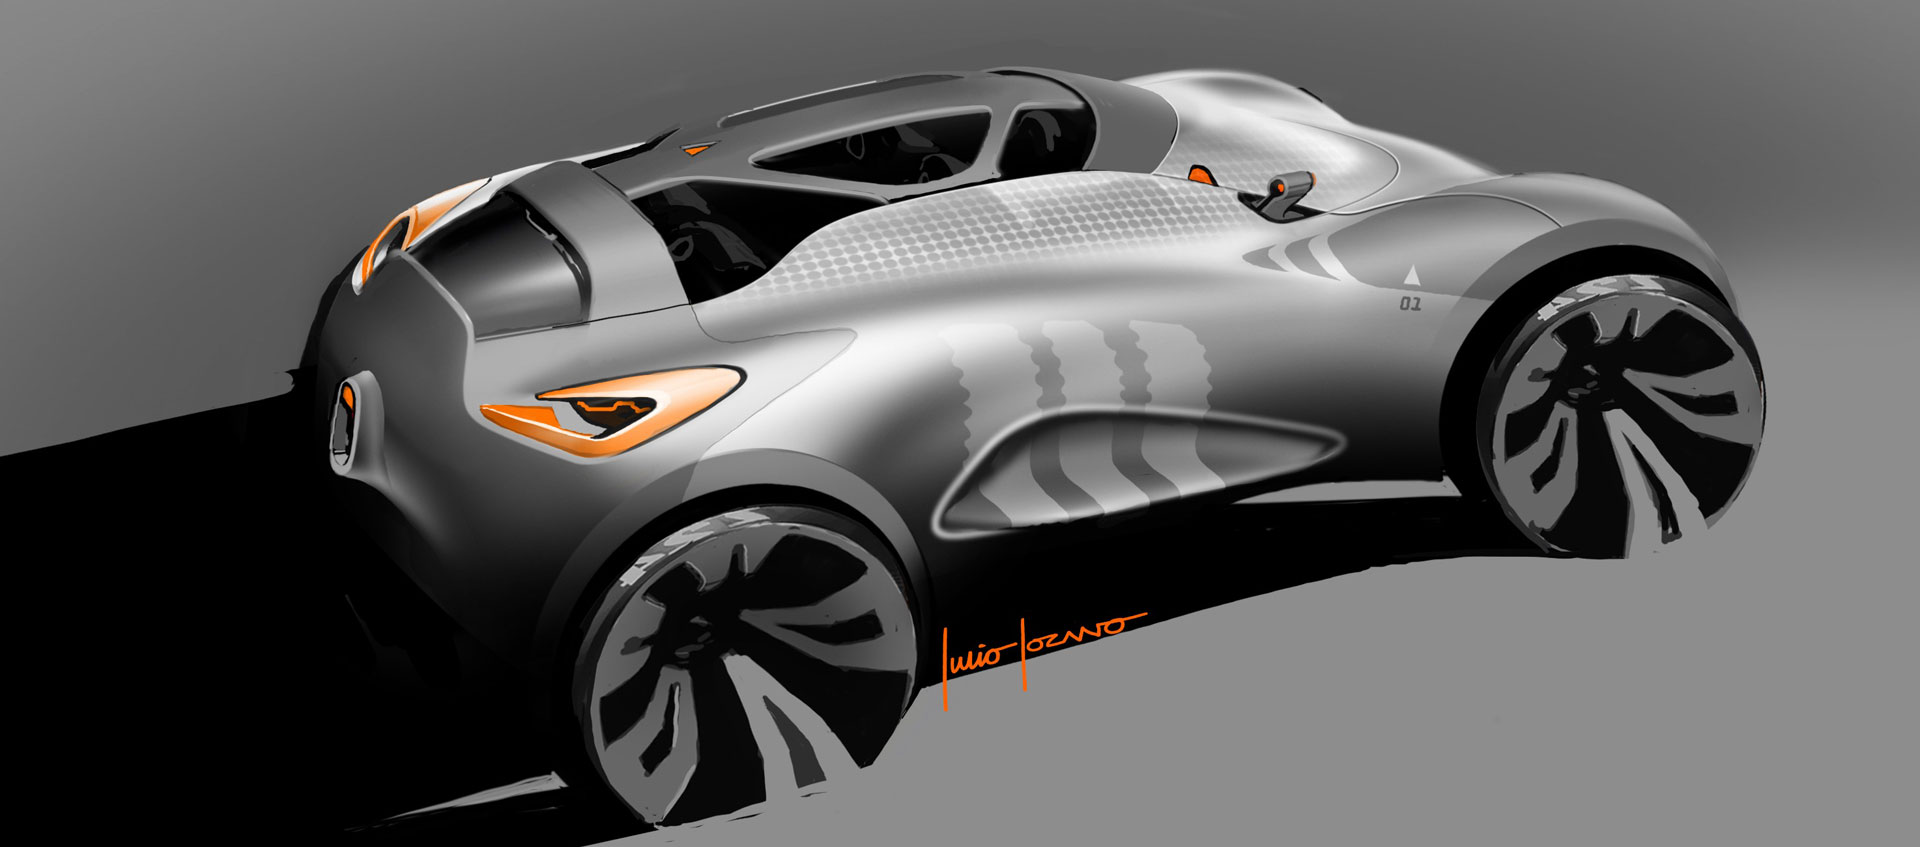 renault captur concept design sketches car body design. Black Bedroom Furniture Sets. Home Design Ideas